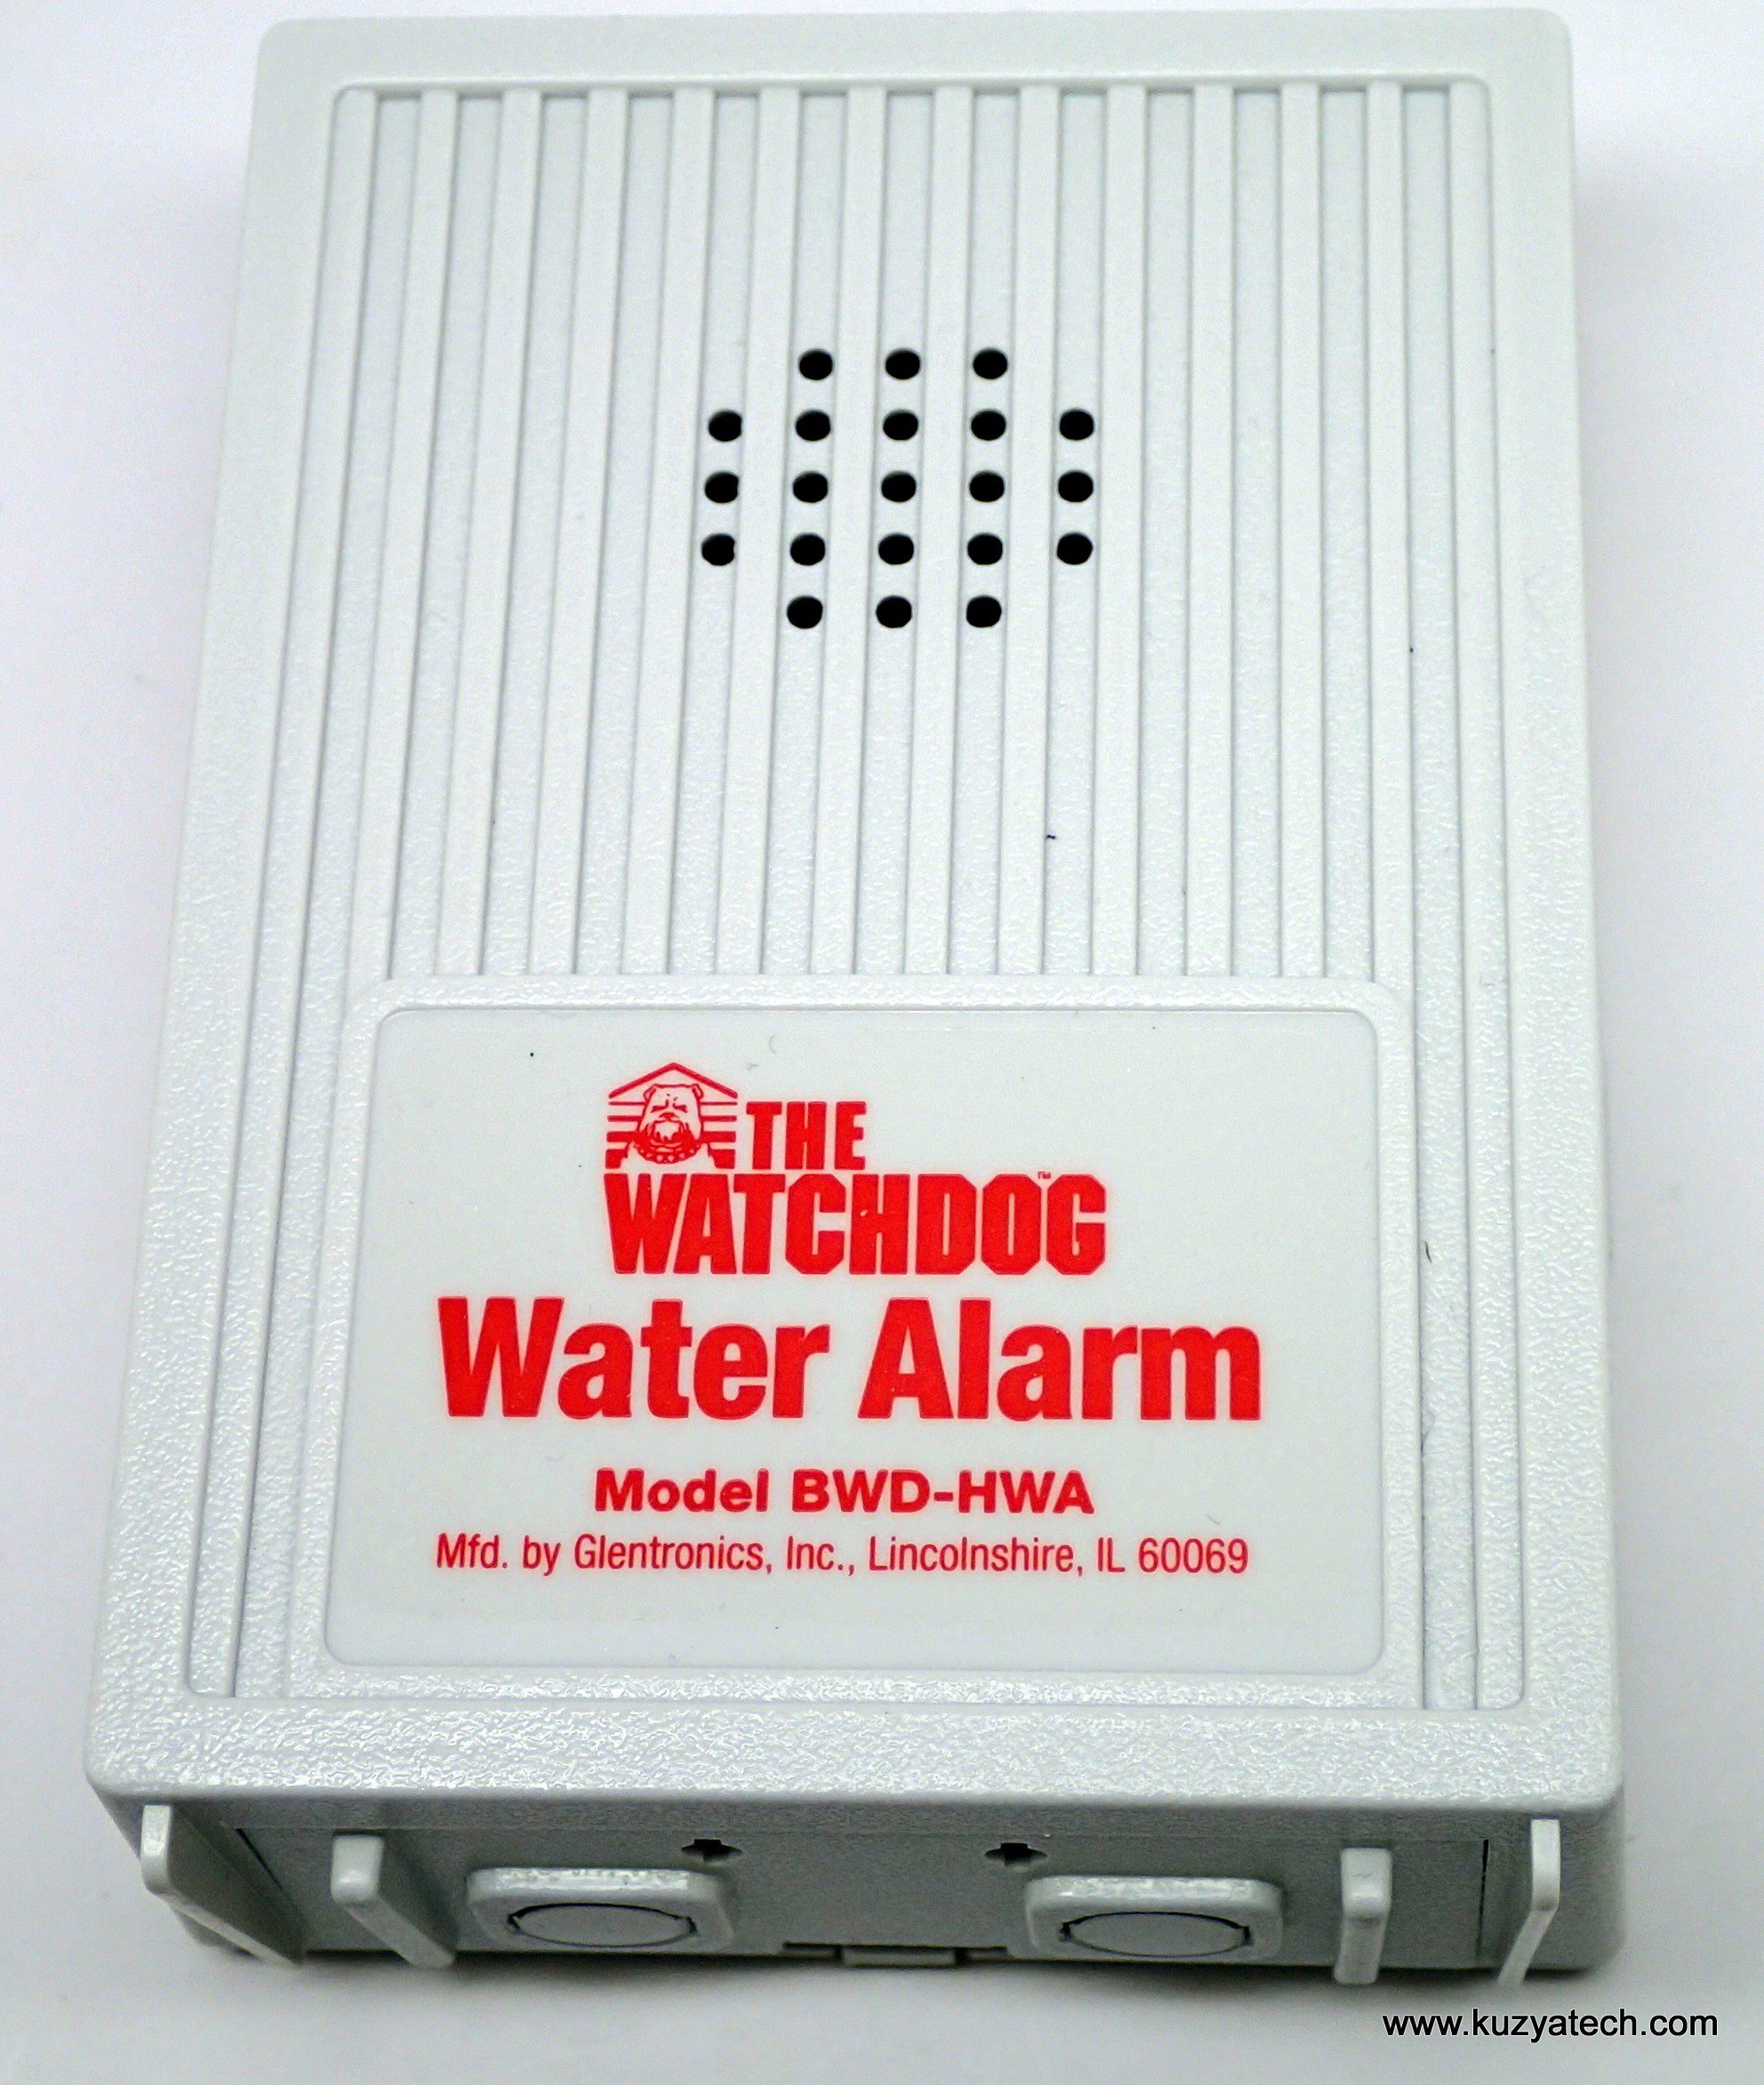 Water Damage Prevention For Your Home Case Design Remodeling Of On Pinterest Electrical Projects Electronics And Watchdog Timer Alarm